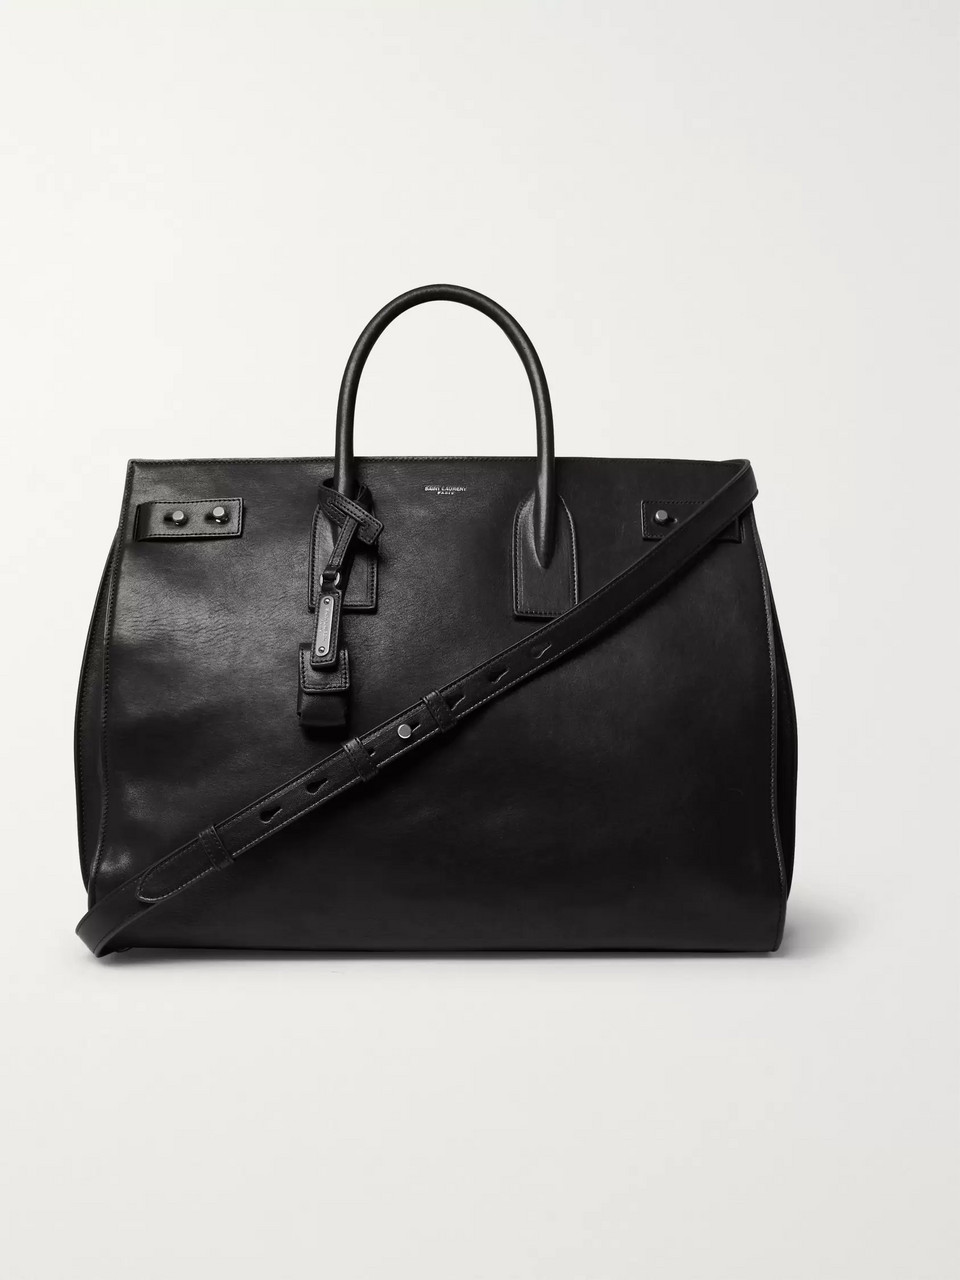 SAINT LAURENT Sac De Jour Large Textured-Leather Tote Bag